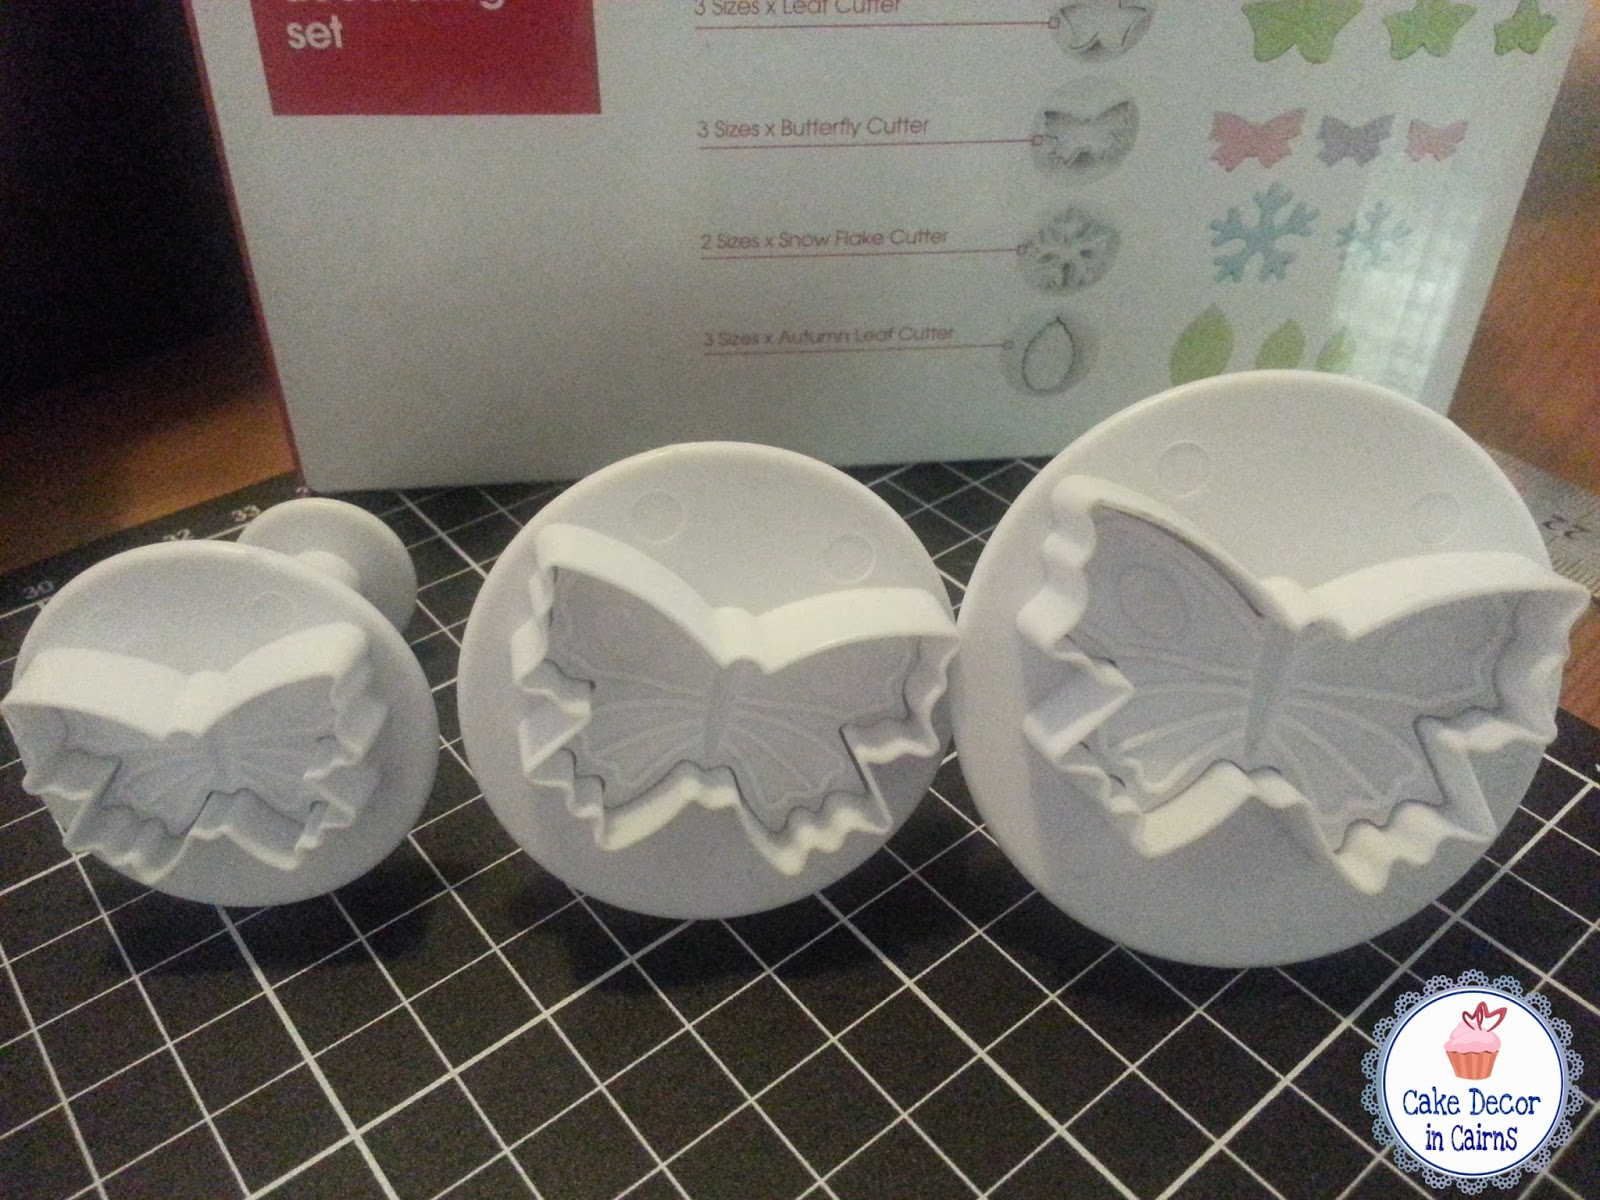 Butterfly Fondant Plunger Cookie cutters bought at Kmart